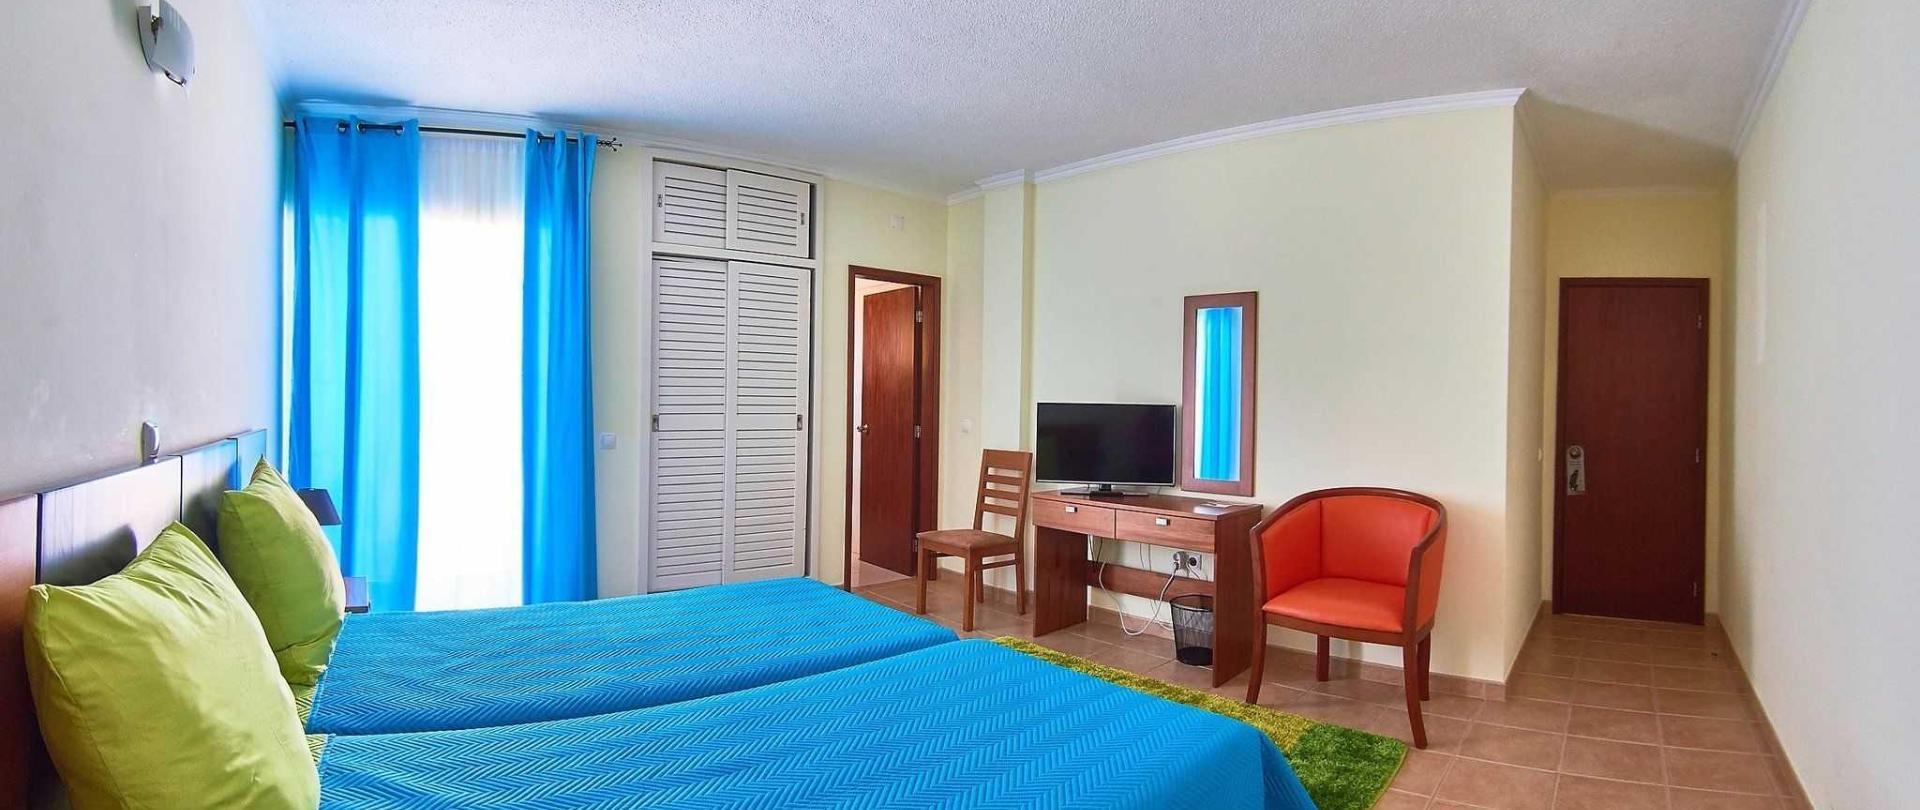 hotel_rooms__11a.jpg